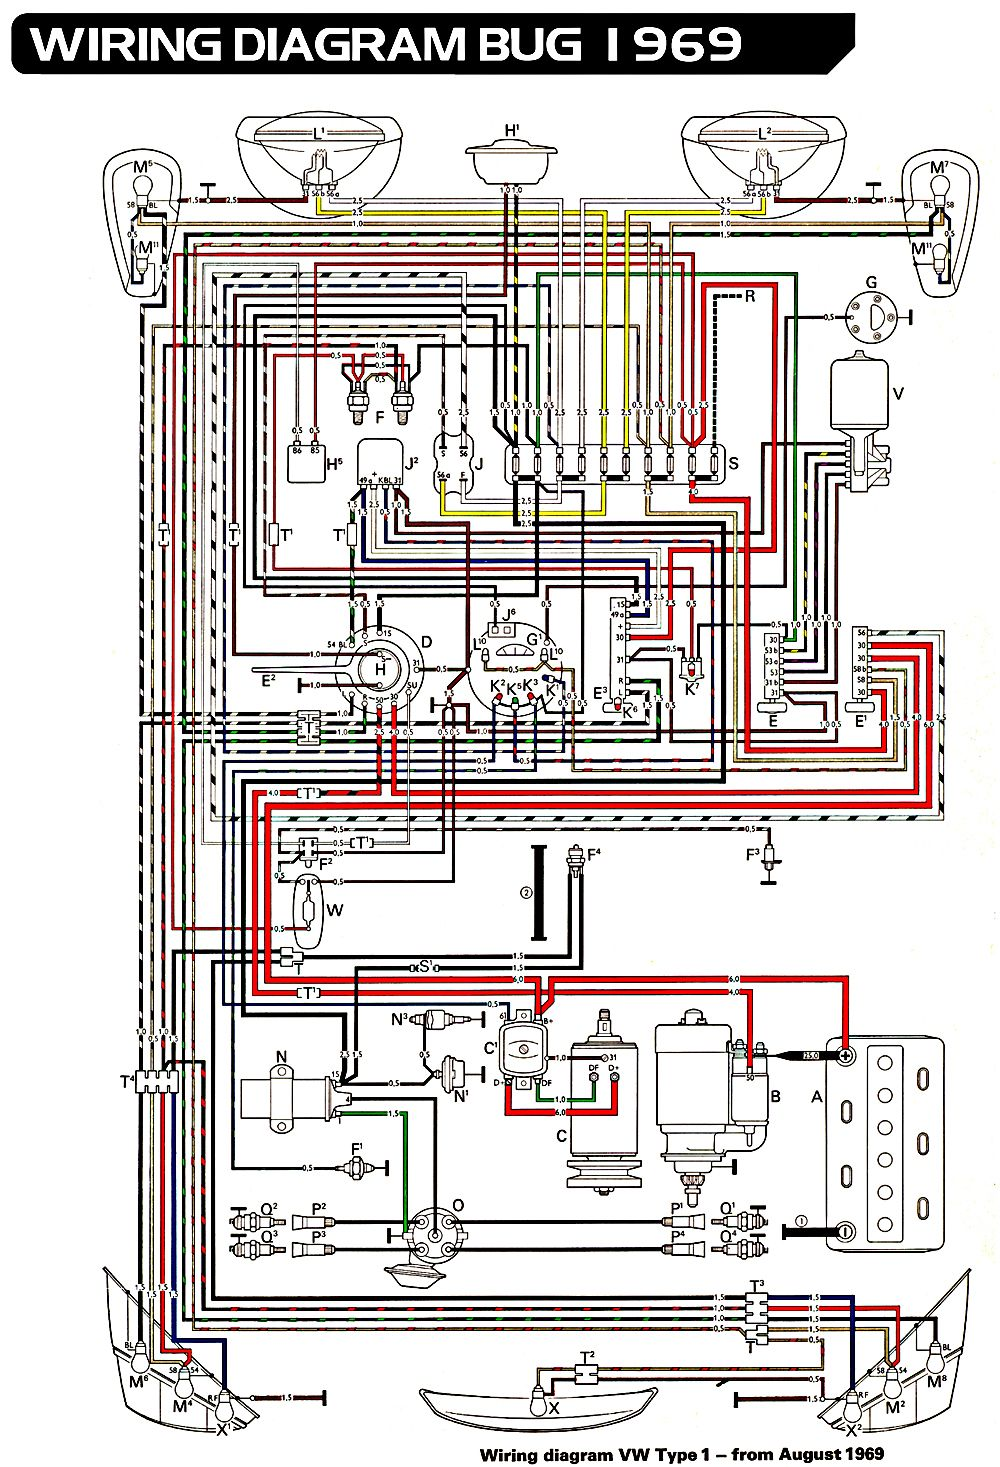 6d75c15875479254f26a32a8499d9044 volkswagen beetle wiring diagram 1966 vw beetle wiring new beetle wiring diagram at bayanpartner.co